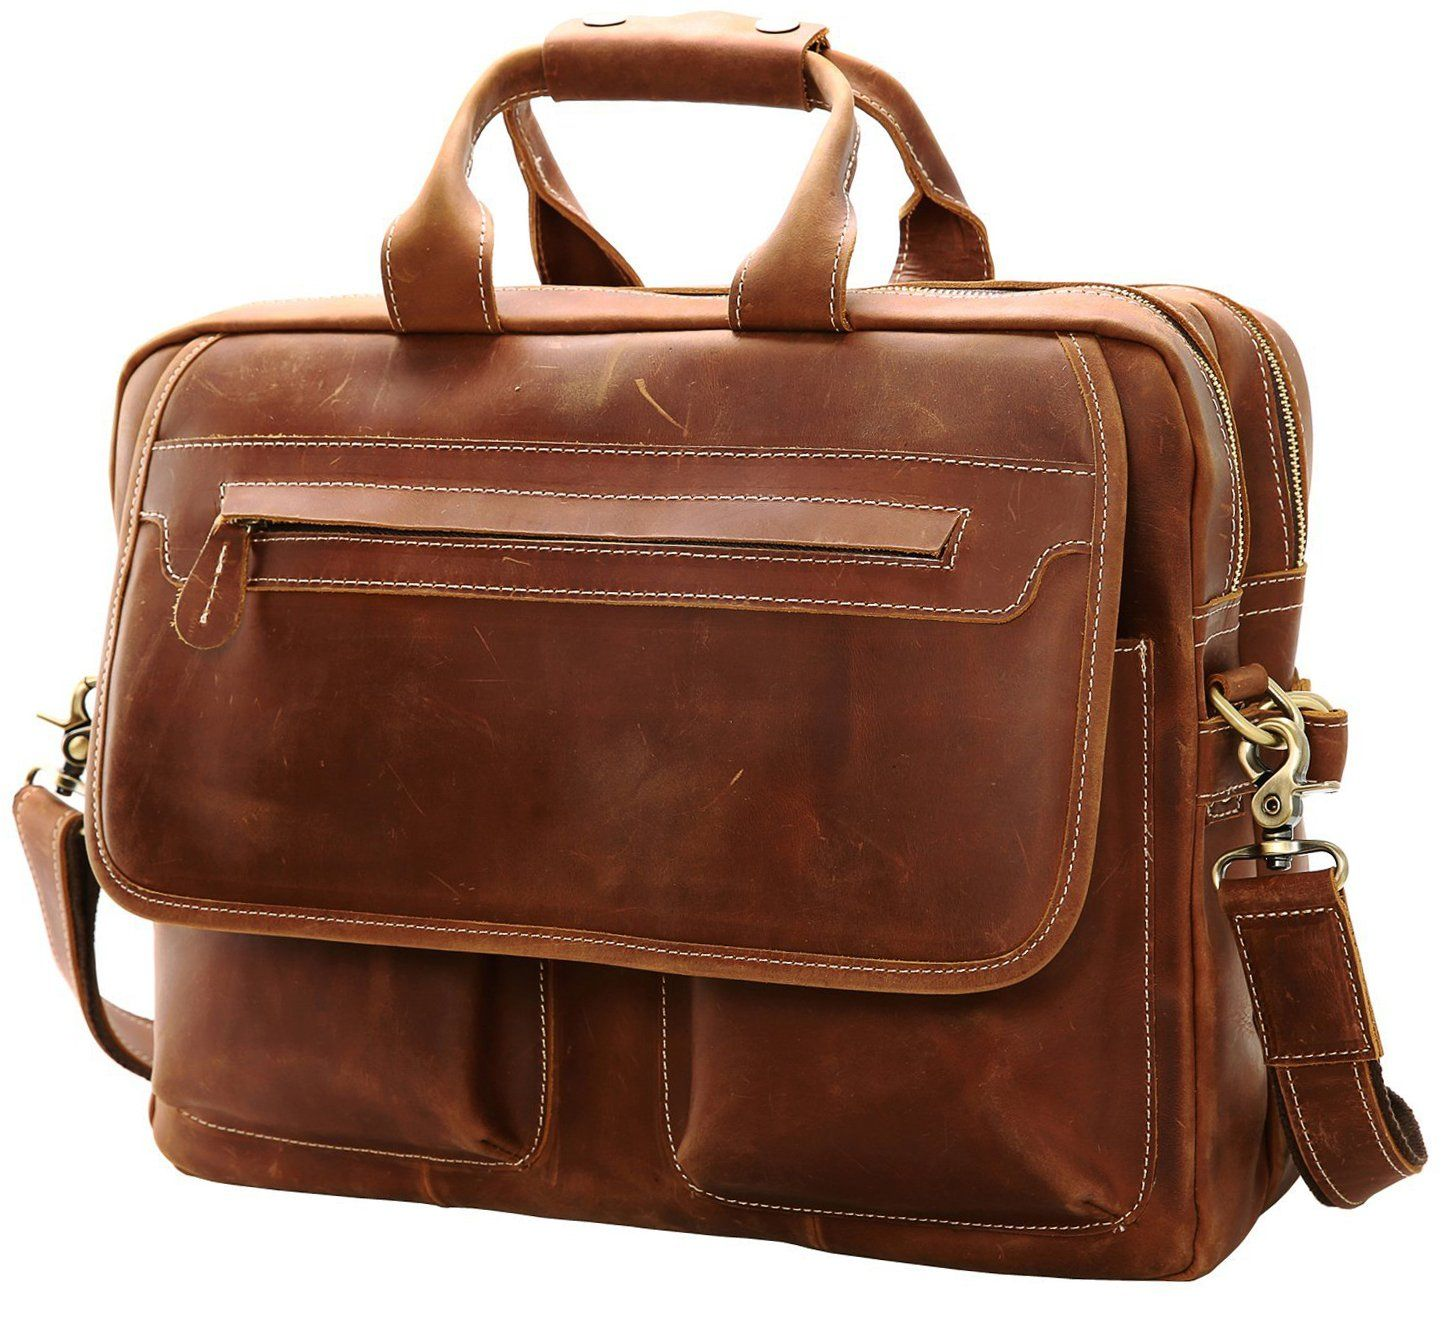 118eb6cc99 Iswee Leather Vintage Briefcase Messenger Bag for Men 14